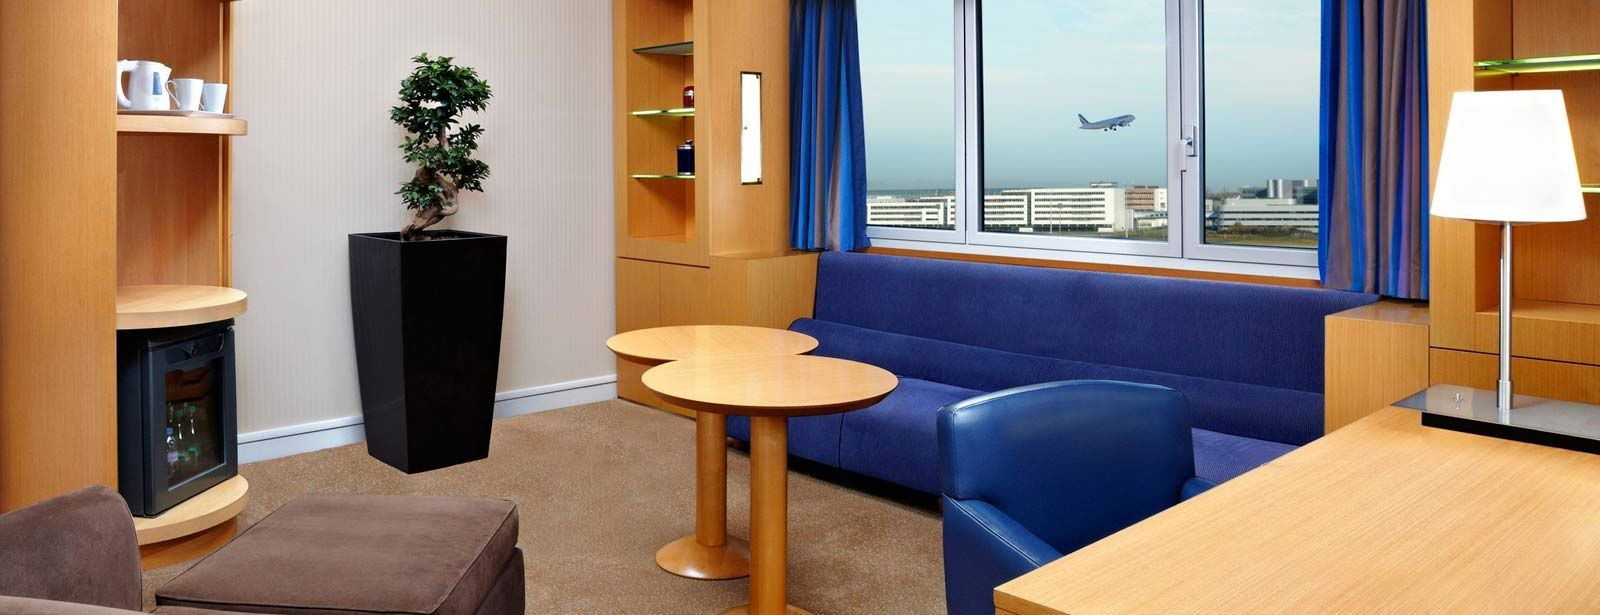 Suite Junior au Sheraton Paris Airport Hotel